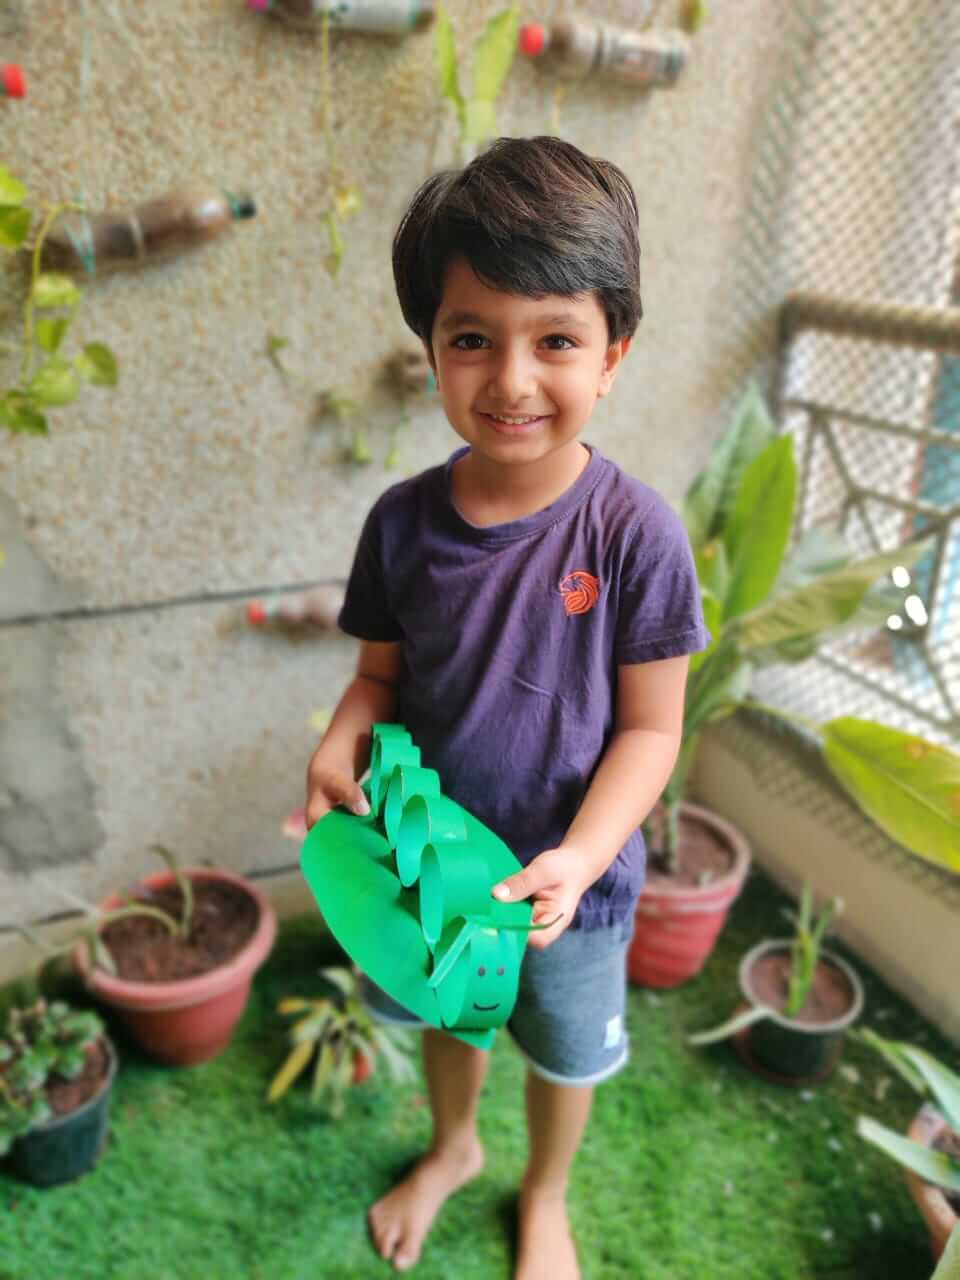 My son had to start schooling from this year but now'homeschooling' &'online learning' is the new normal. Here's how to Homeschool your Child in India?